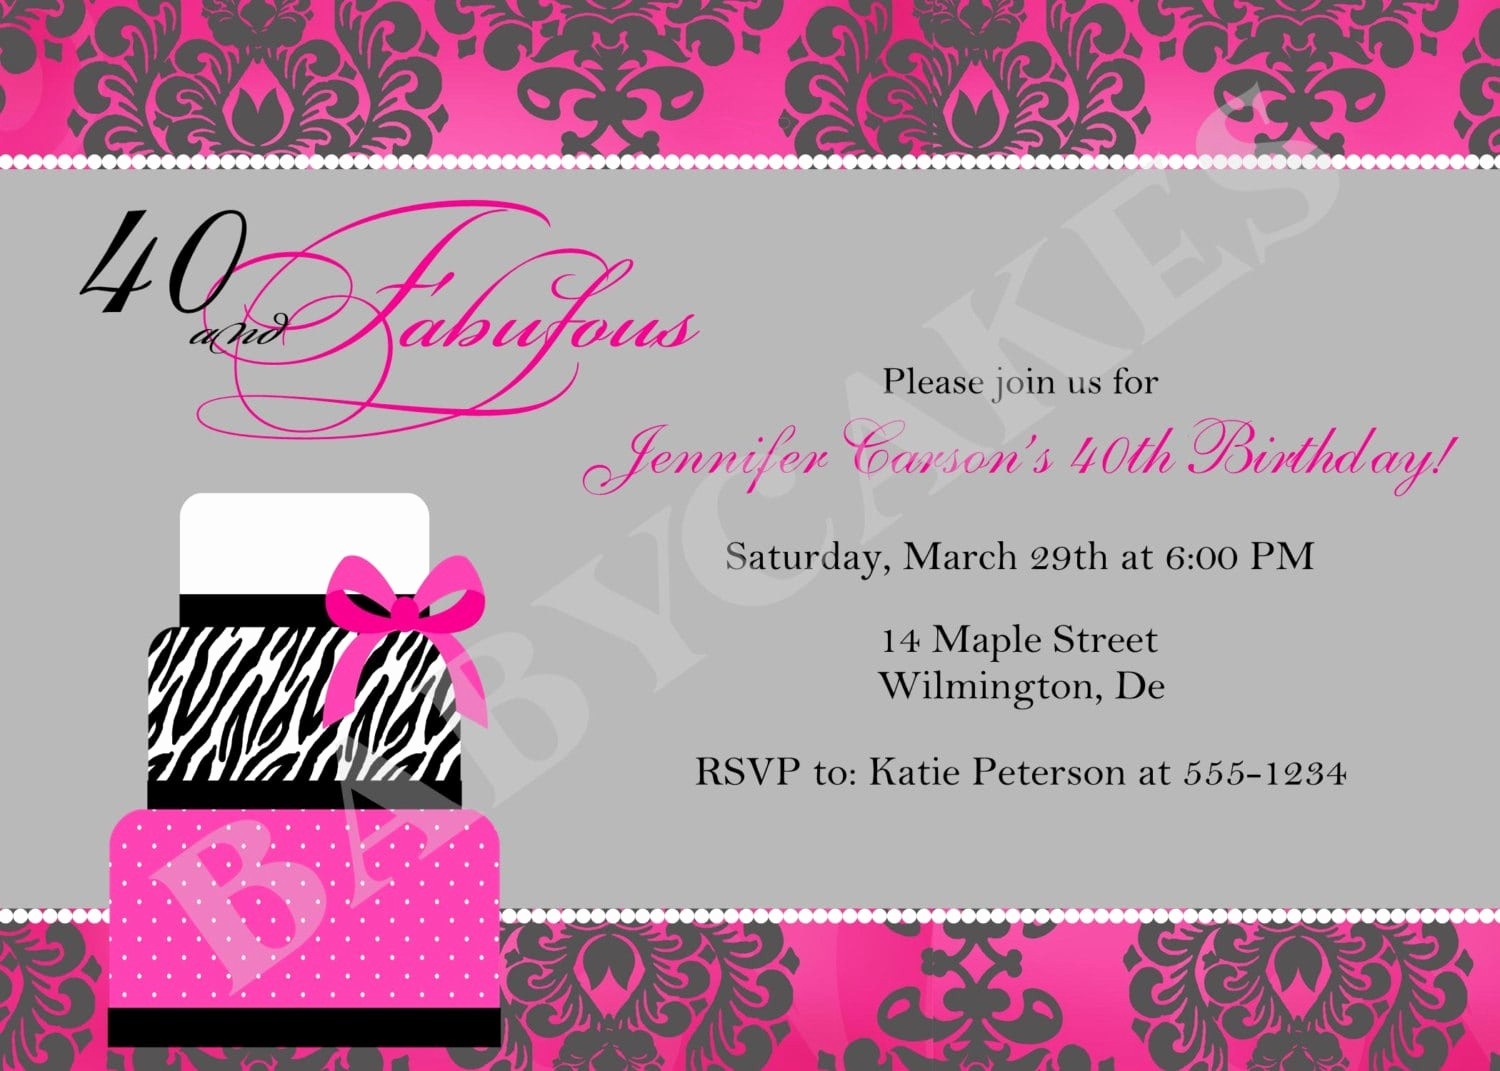 Party Invitation Templates Free Download Beautiful 40th Party Invitation Template Free